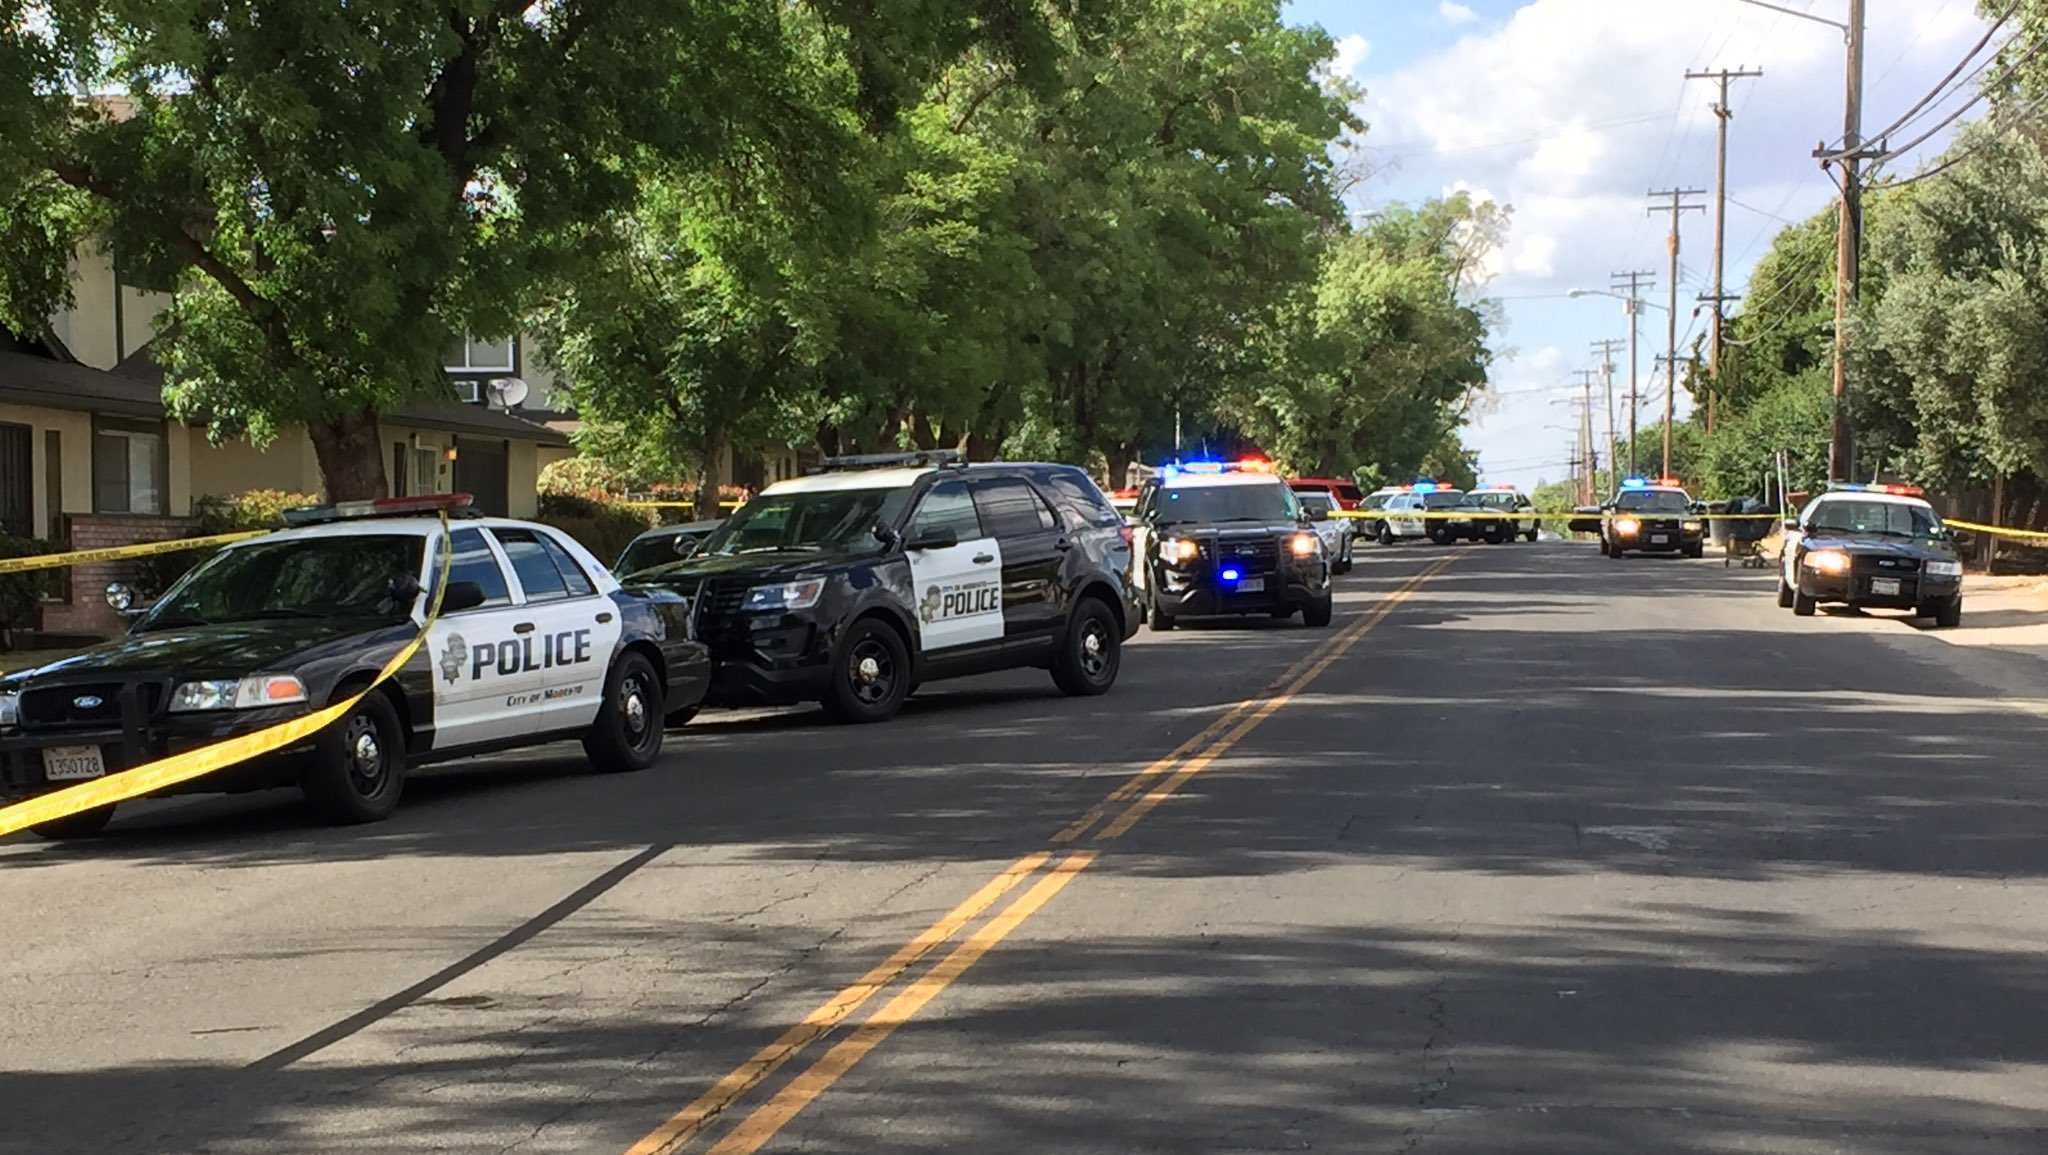 Officers investigate a double shooting in a Modesto neighborhood on Monday, June 12, 2017, the Modesto Police Department said.